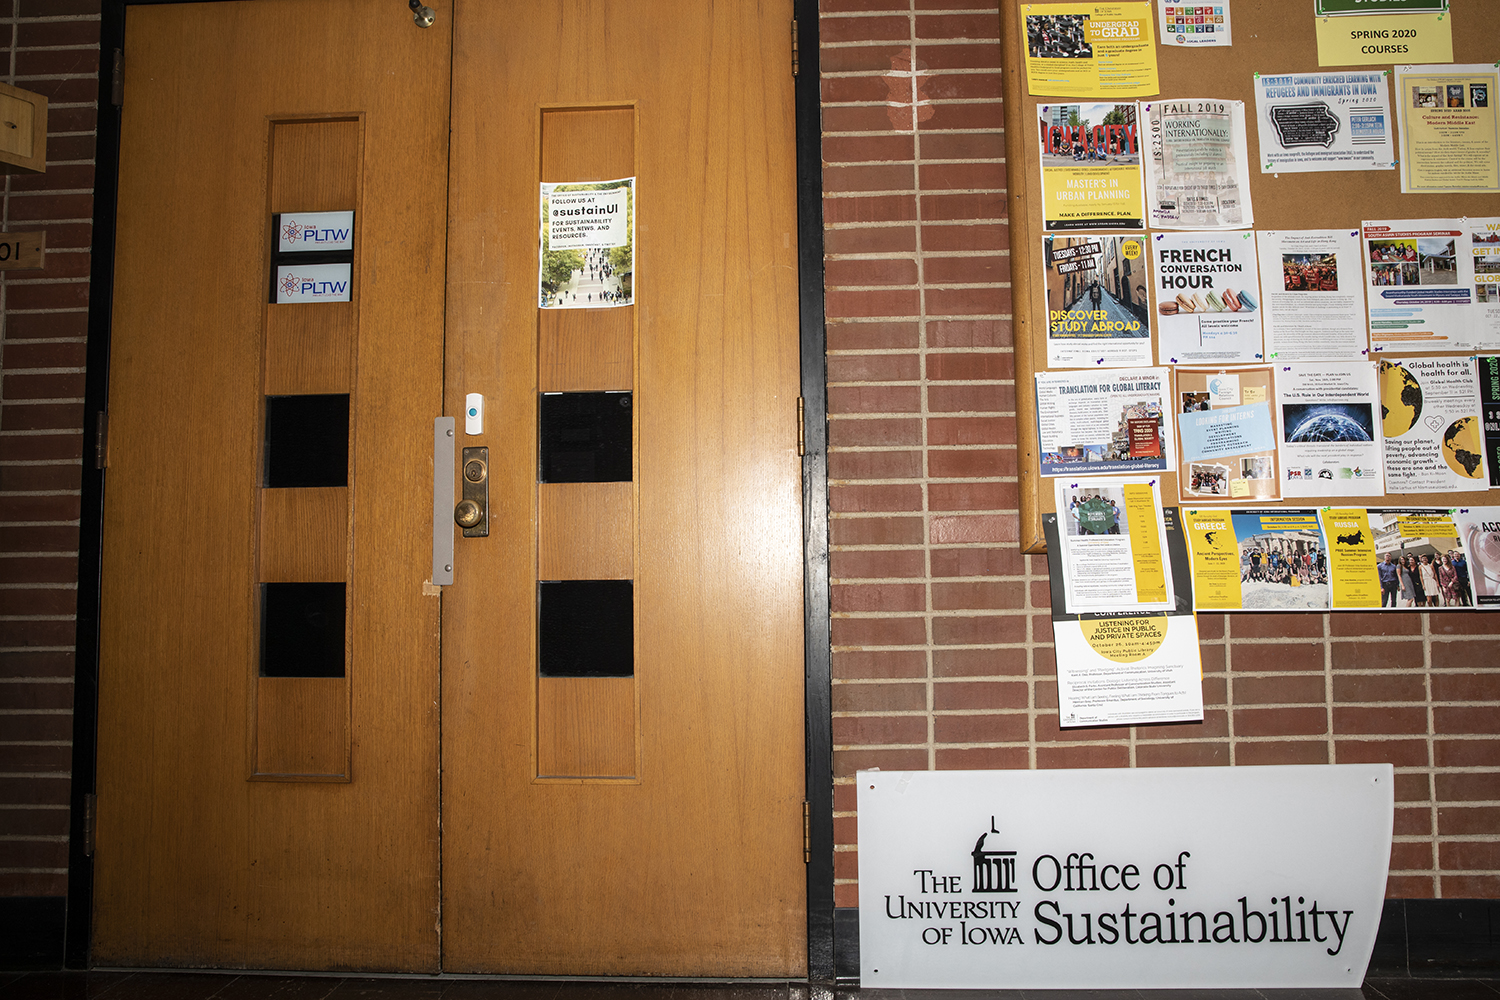 The University of Iowa Office of Sustainability in the Communication Center on October 21, 2019. The Office of Sustainability is partnering with University Dining to reduce waste at Iowa. (Ryan Adams/The Daily Iowan)